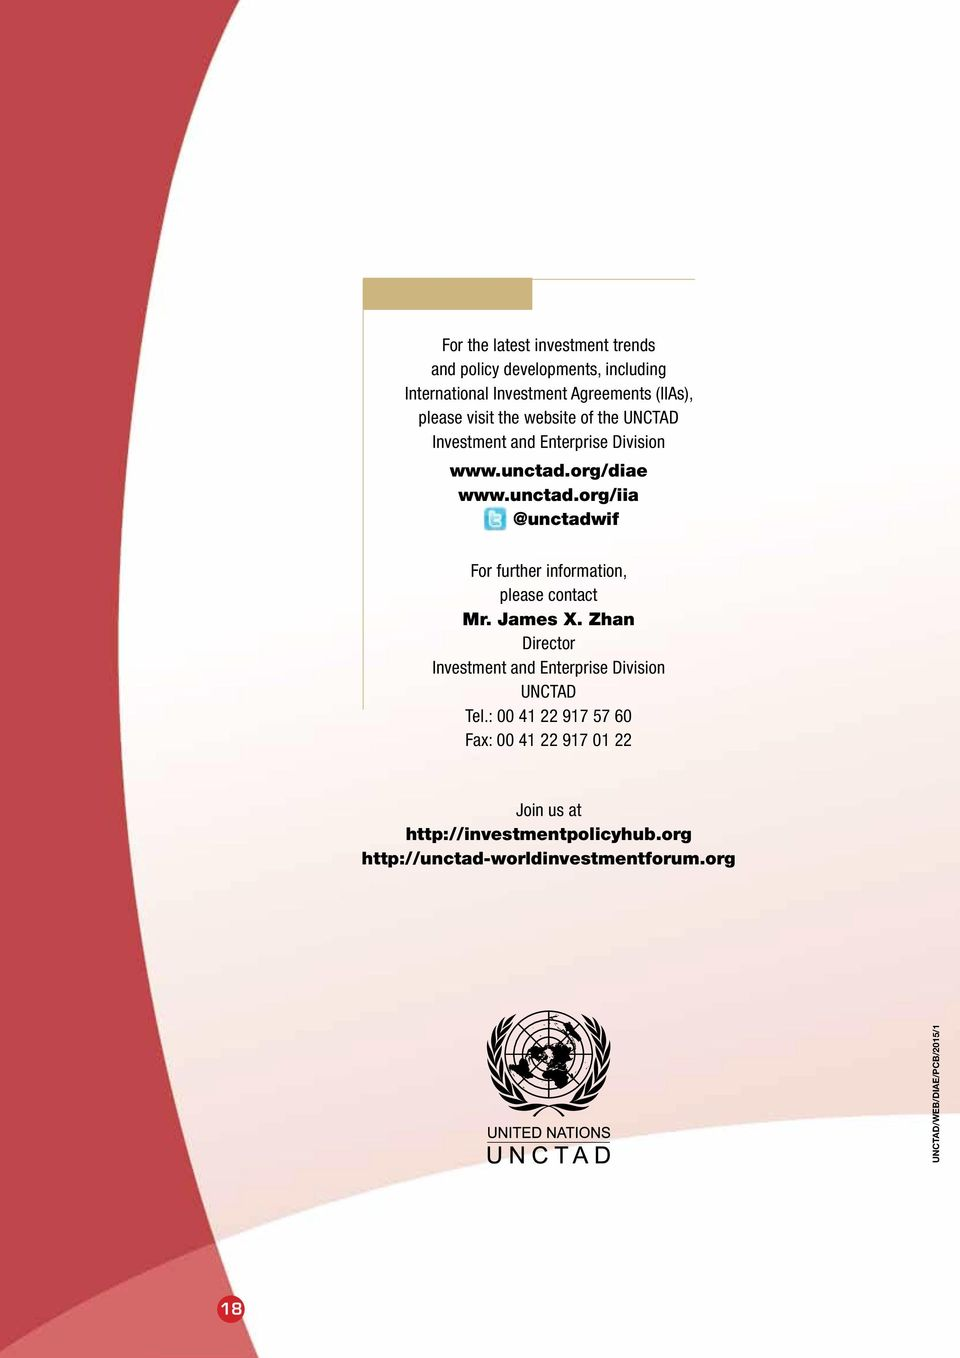 org/diae www.unctad.org/iia @unctadwif For further information, please contact Mr. James X.